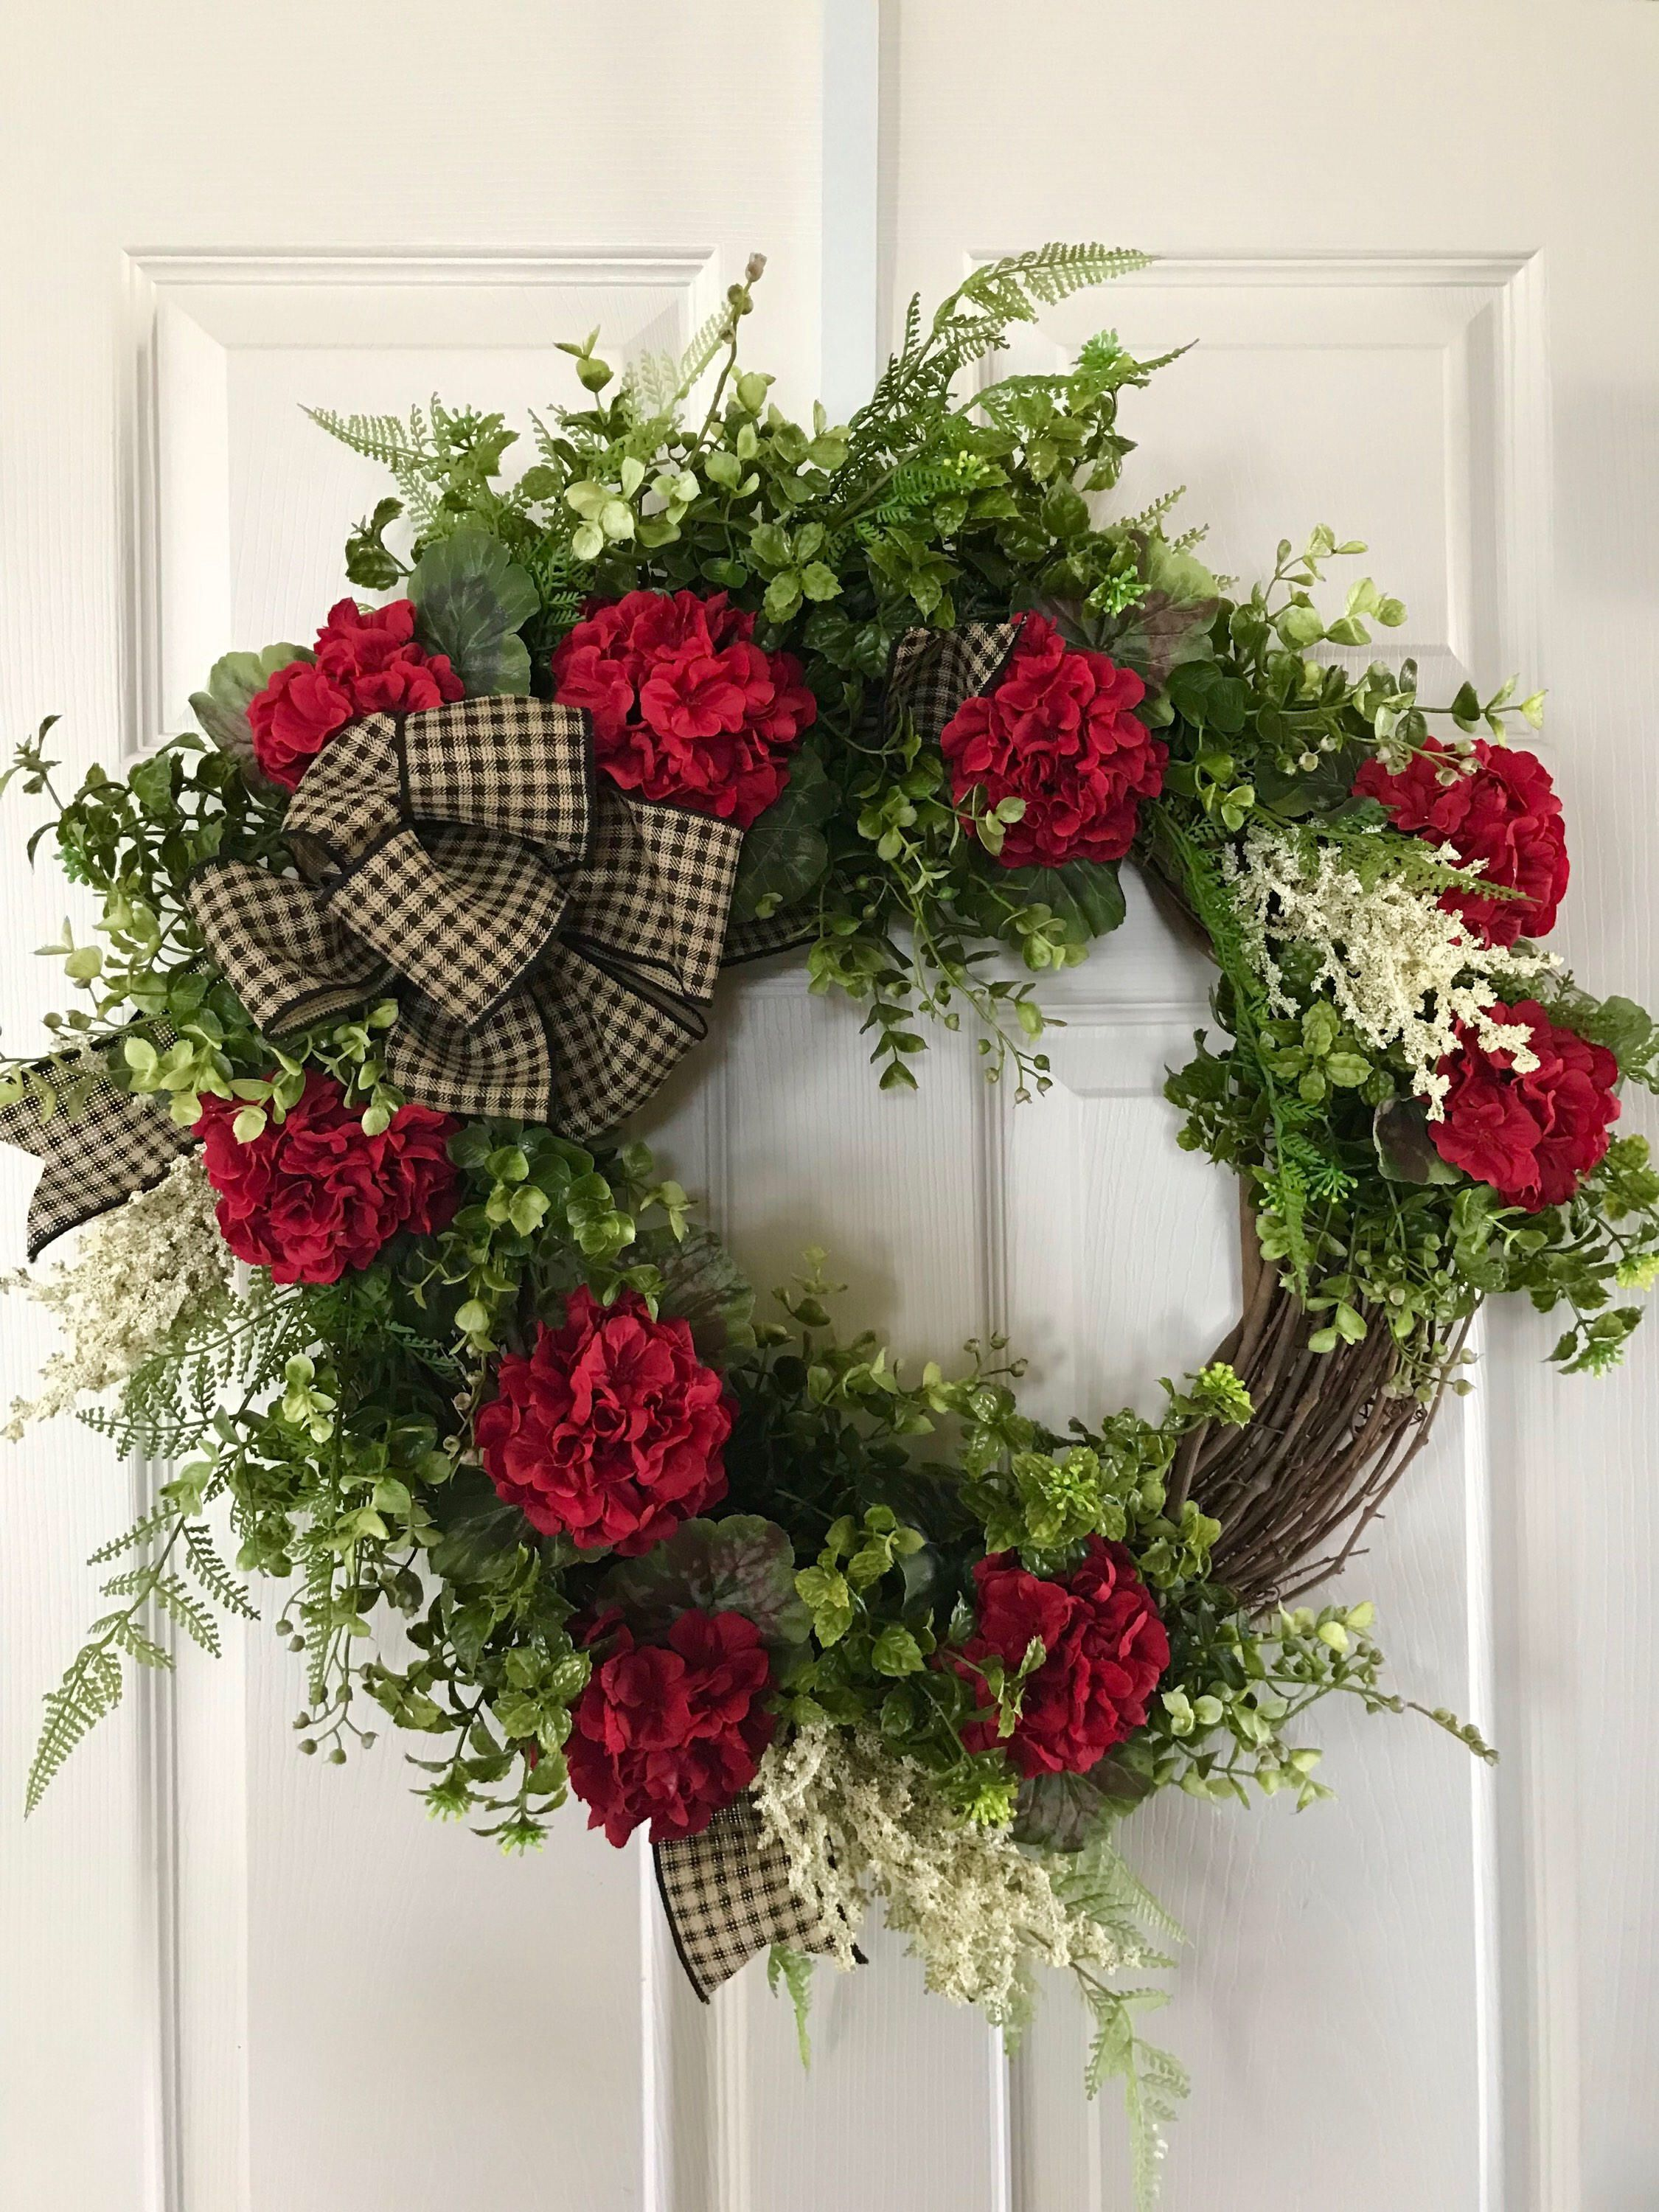 Spring Wreath For Front Door Summer Wreath Geranium Wreath By Toleshack On Etsy Https Www Etsy Wreaths For Front Door Summer Wreath Spring Front Door Wreaths